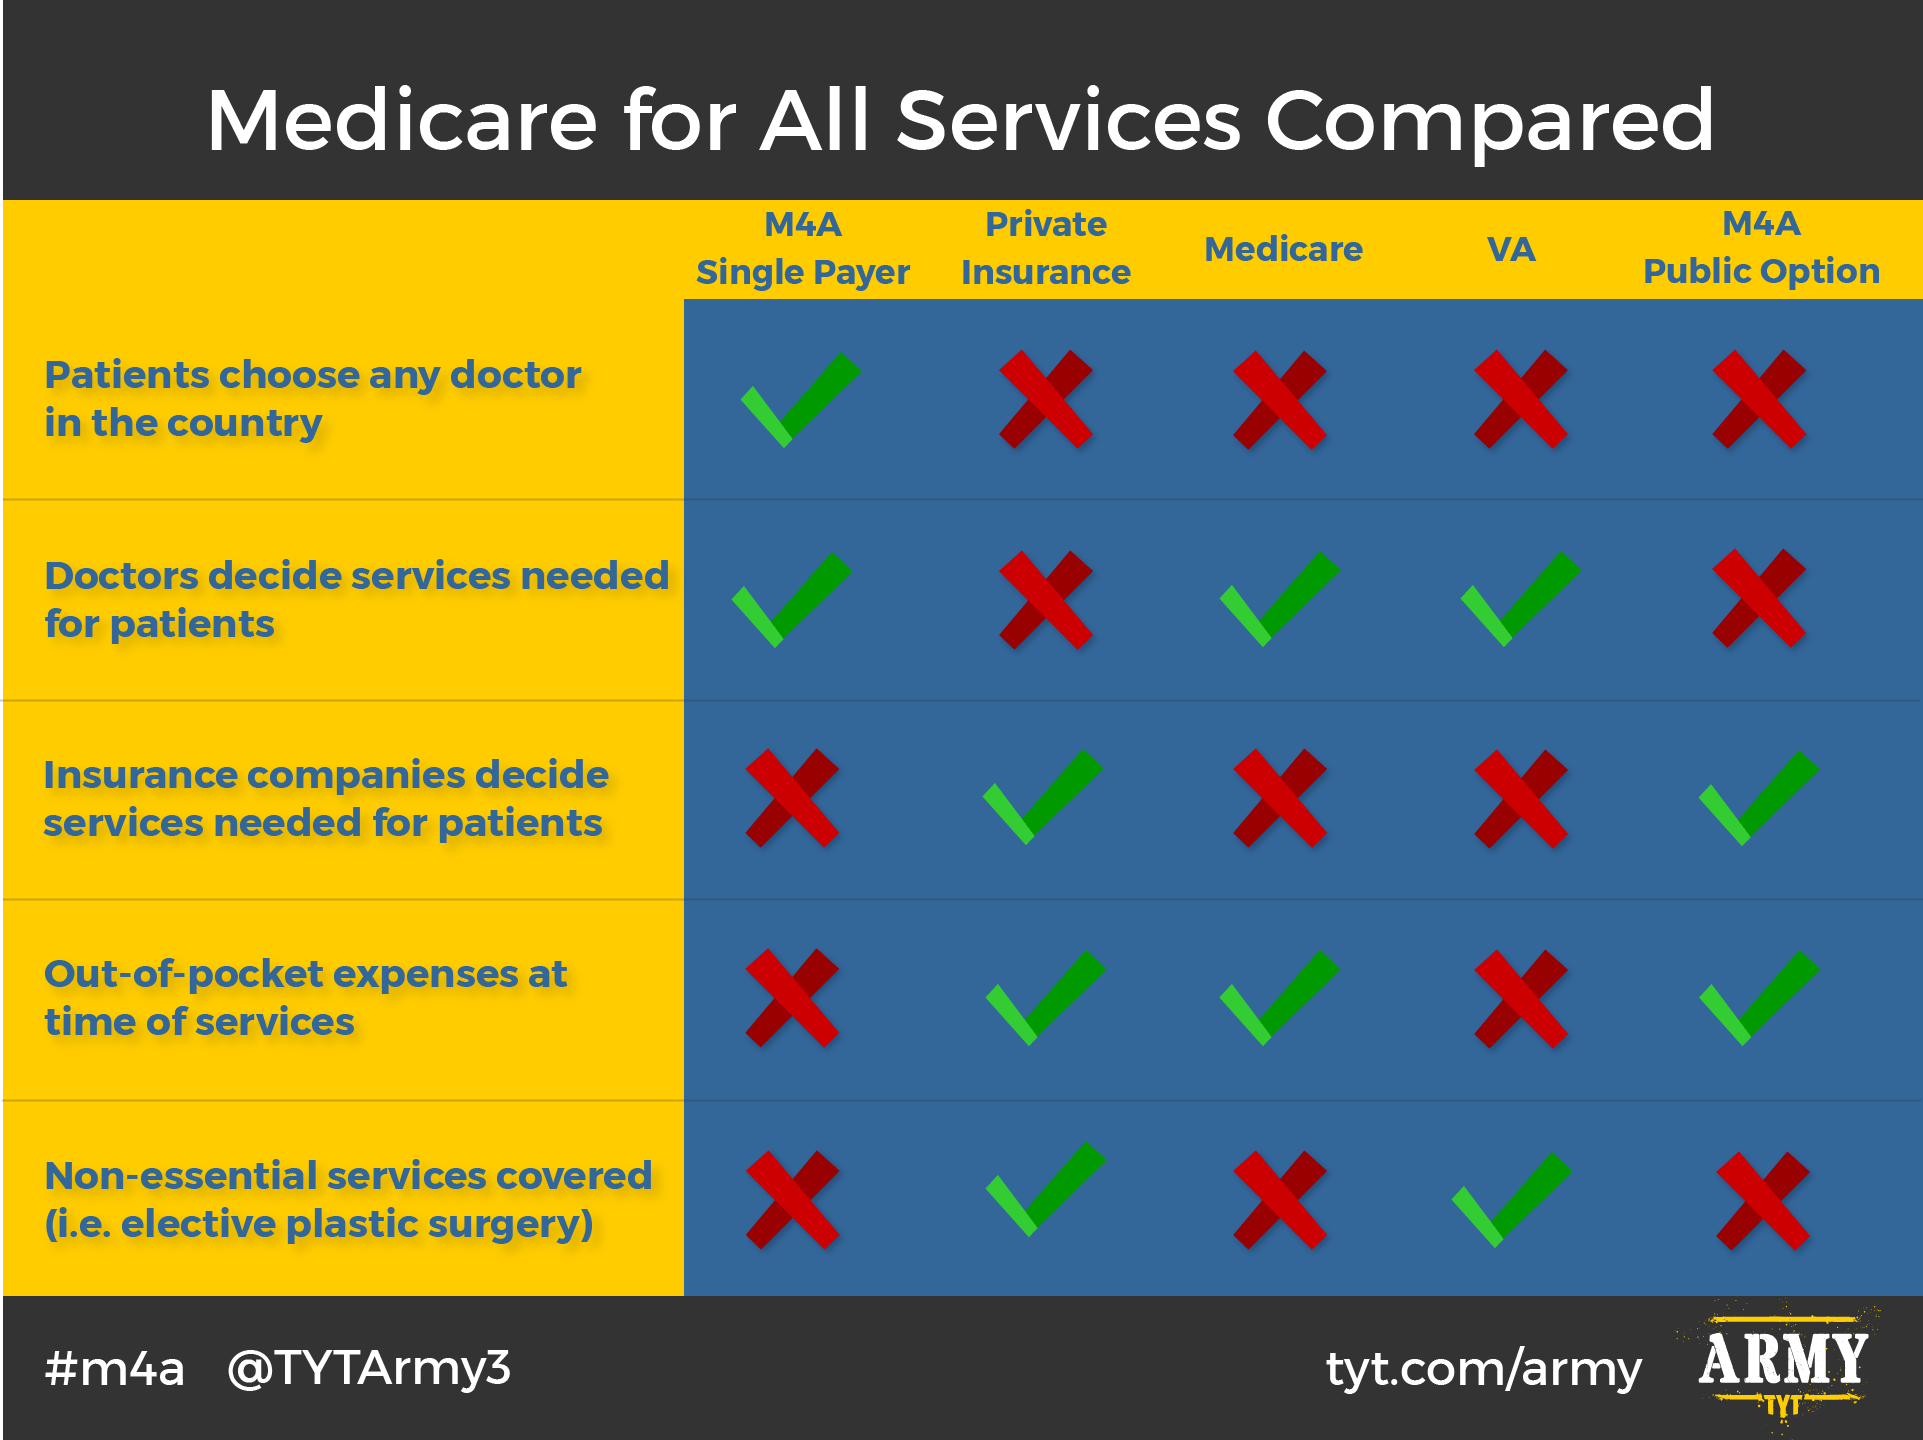 Services Covered Under Medicare For All